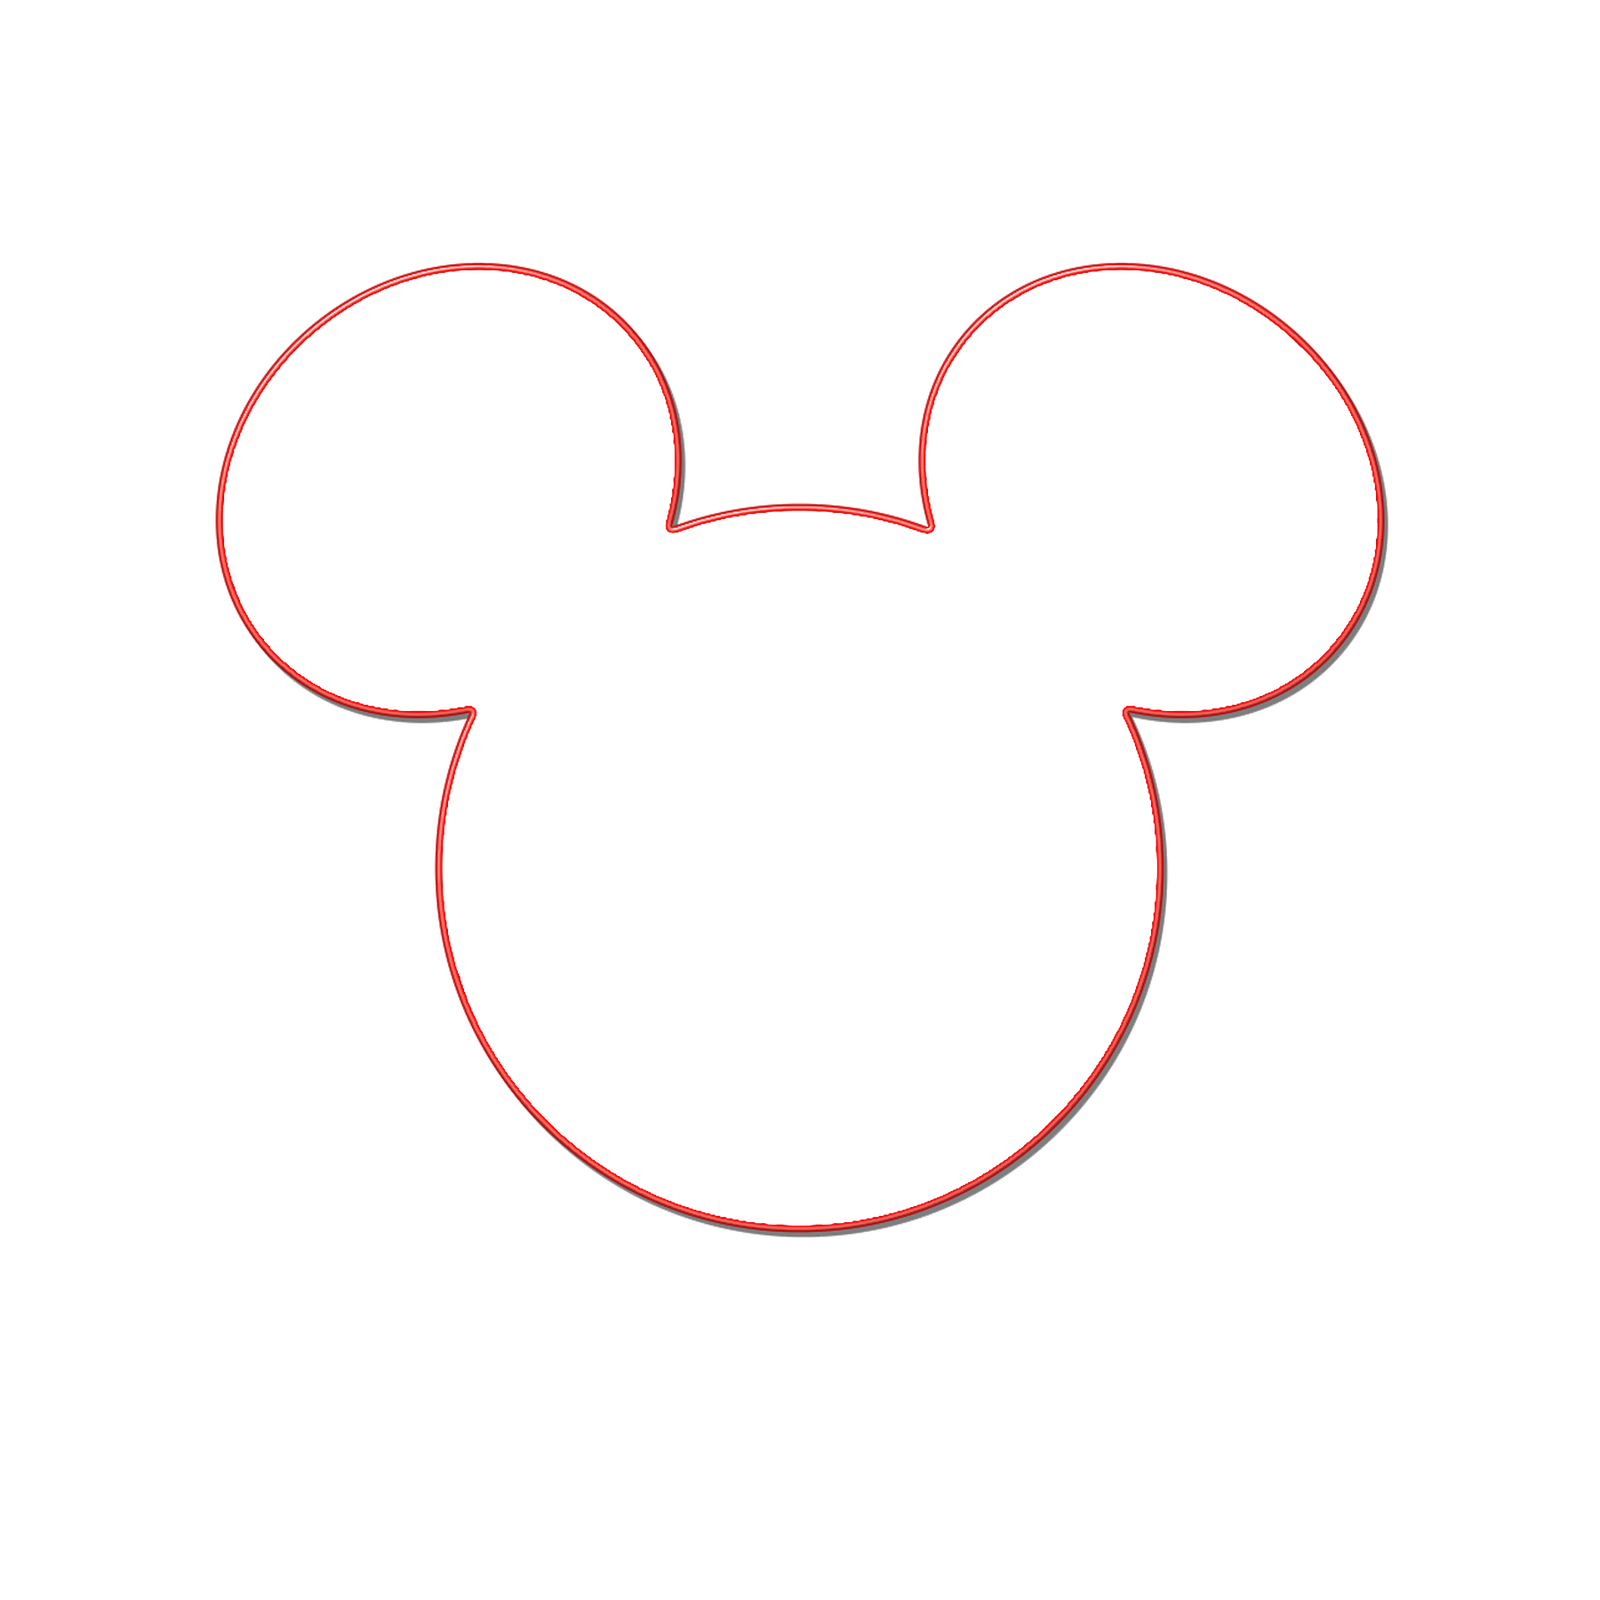 1600x1600 Minnie Mouse Silhouette Clip Art